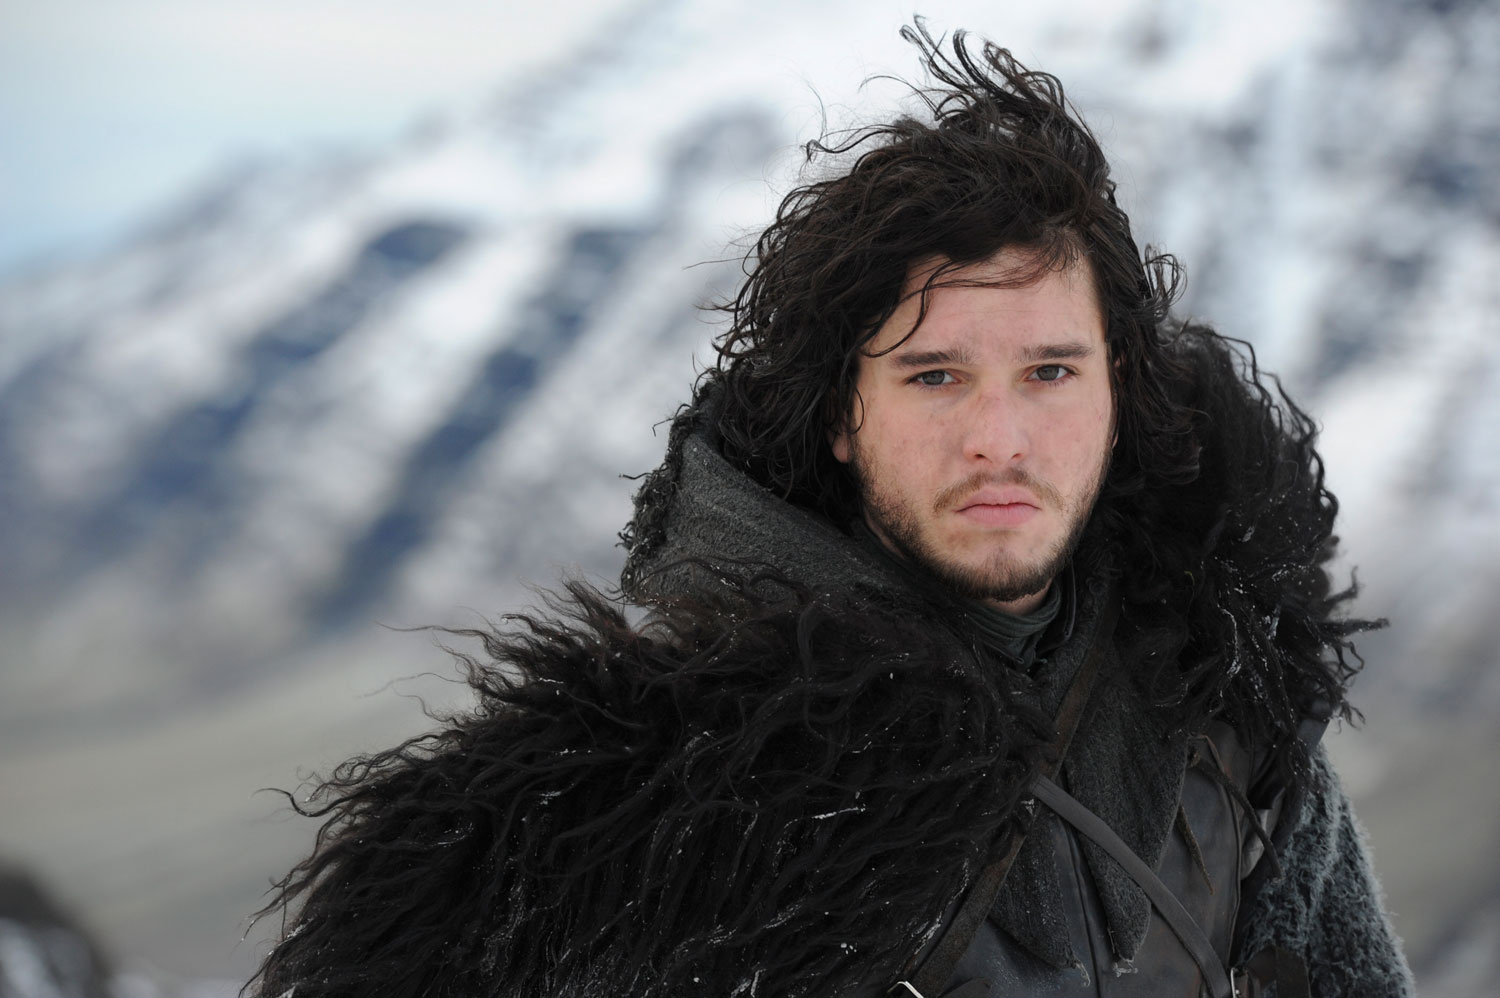 Kit Harington just dropped a bomb about Jon Snow